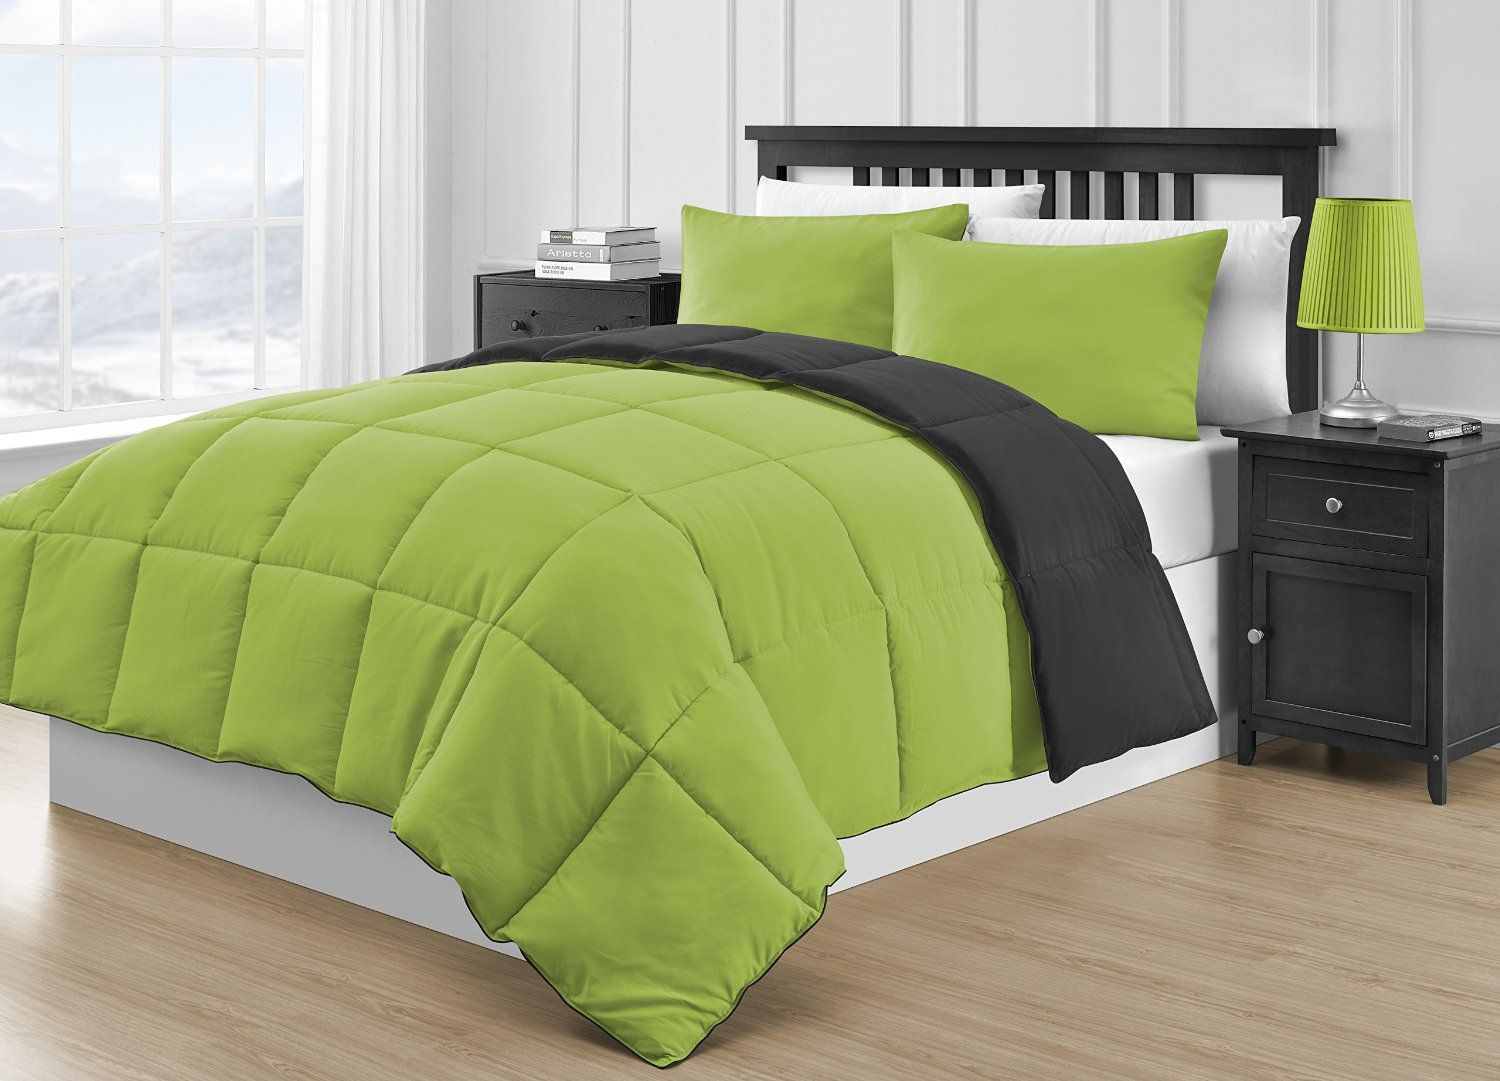 Lime Green Comforter Bedding Green Comforters Bedding Green